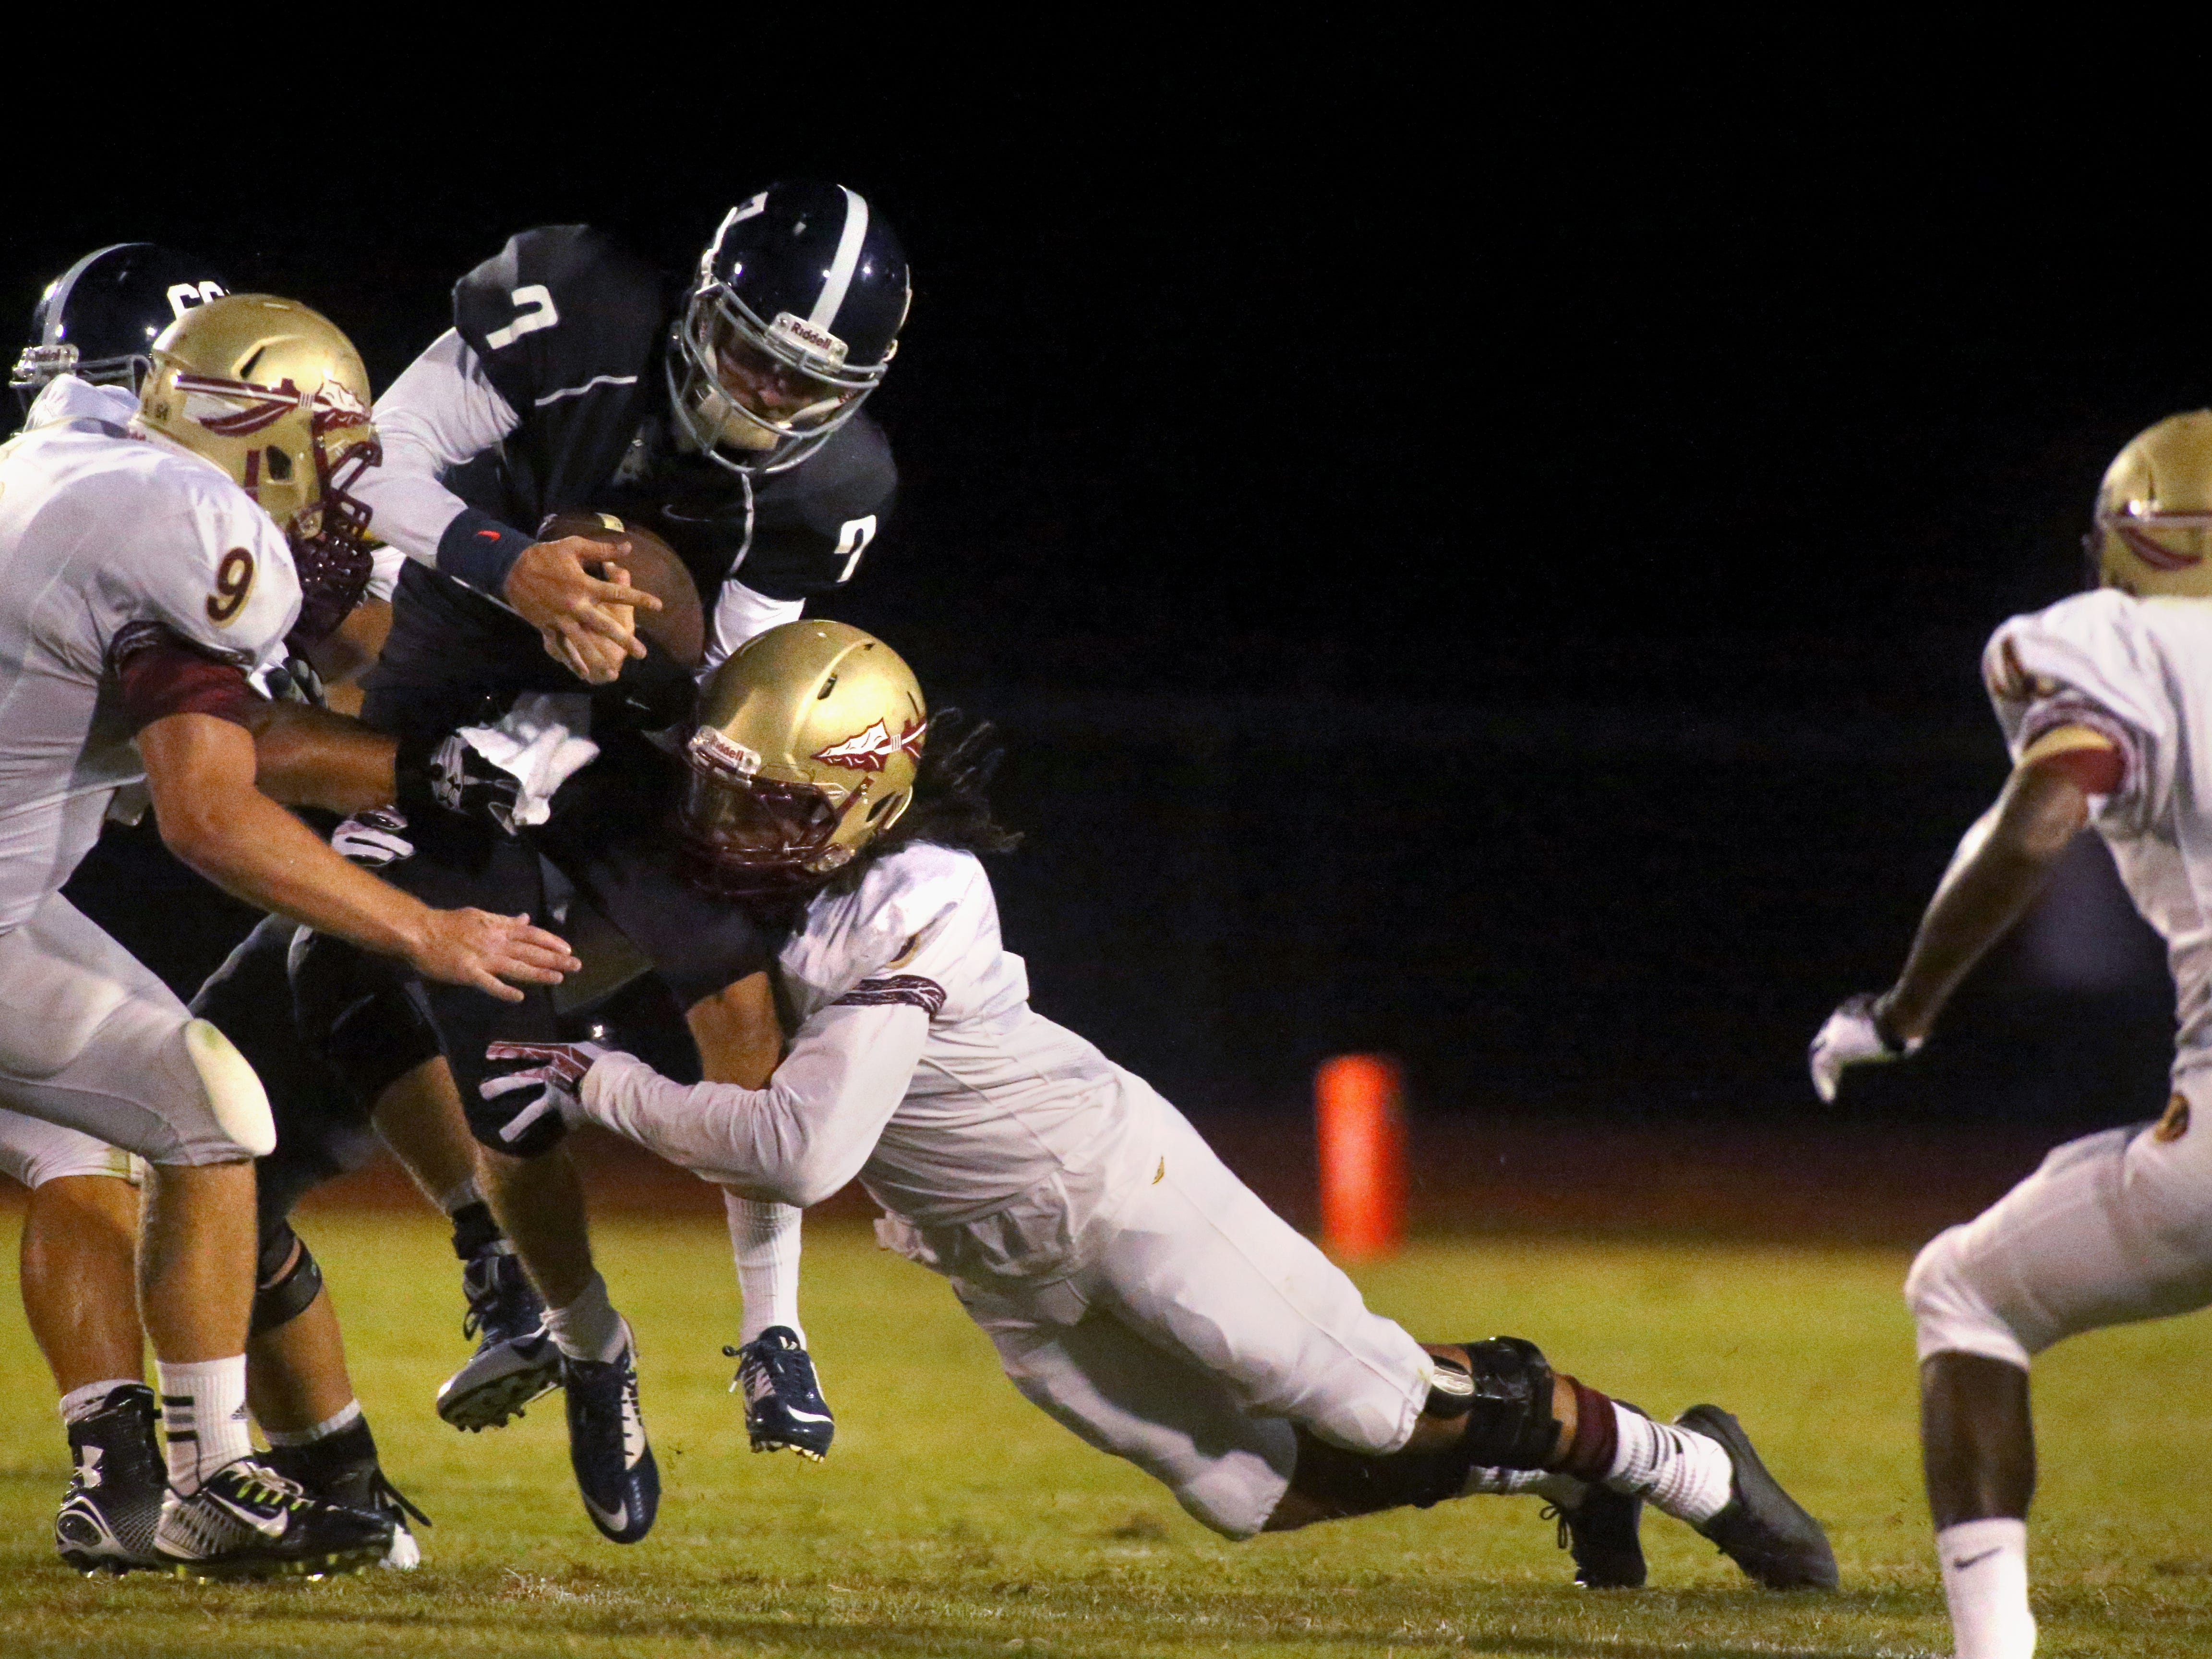 Siegel's quarterback Jordan Middleton runs the ball as he is tackled by Riverdale's Ben Wells and Austin McGrone during the week zero game at Siegel, on Friday, August 22, 2014.